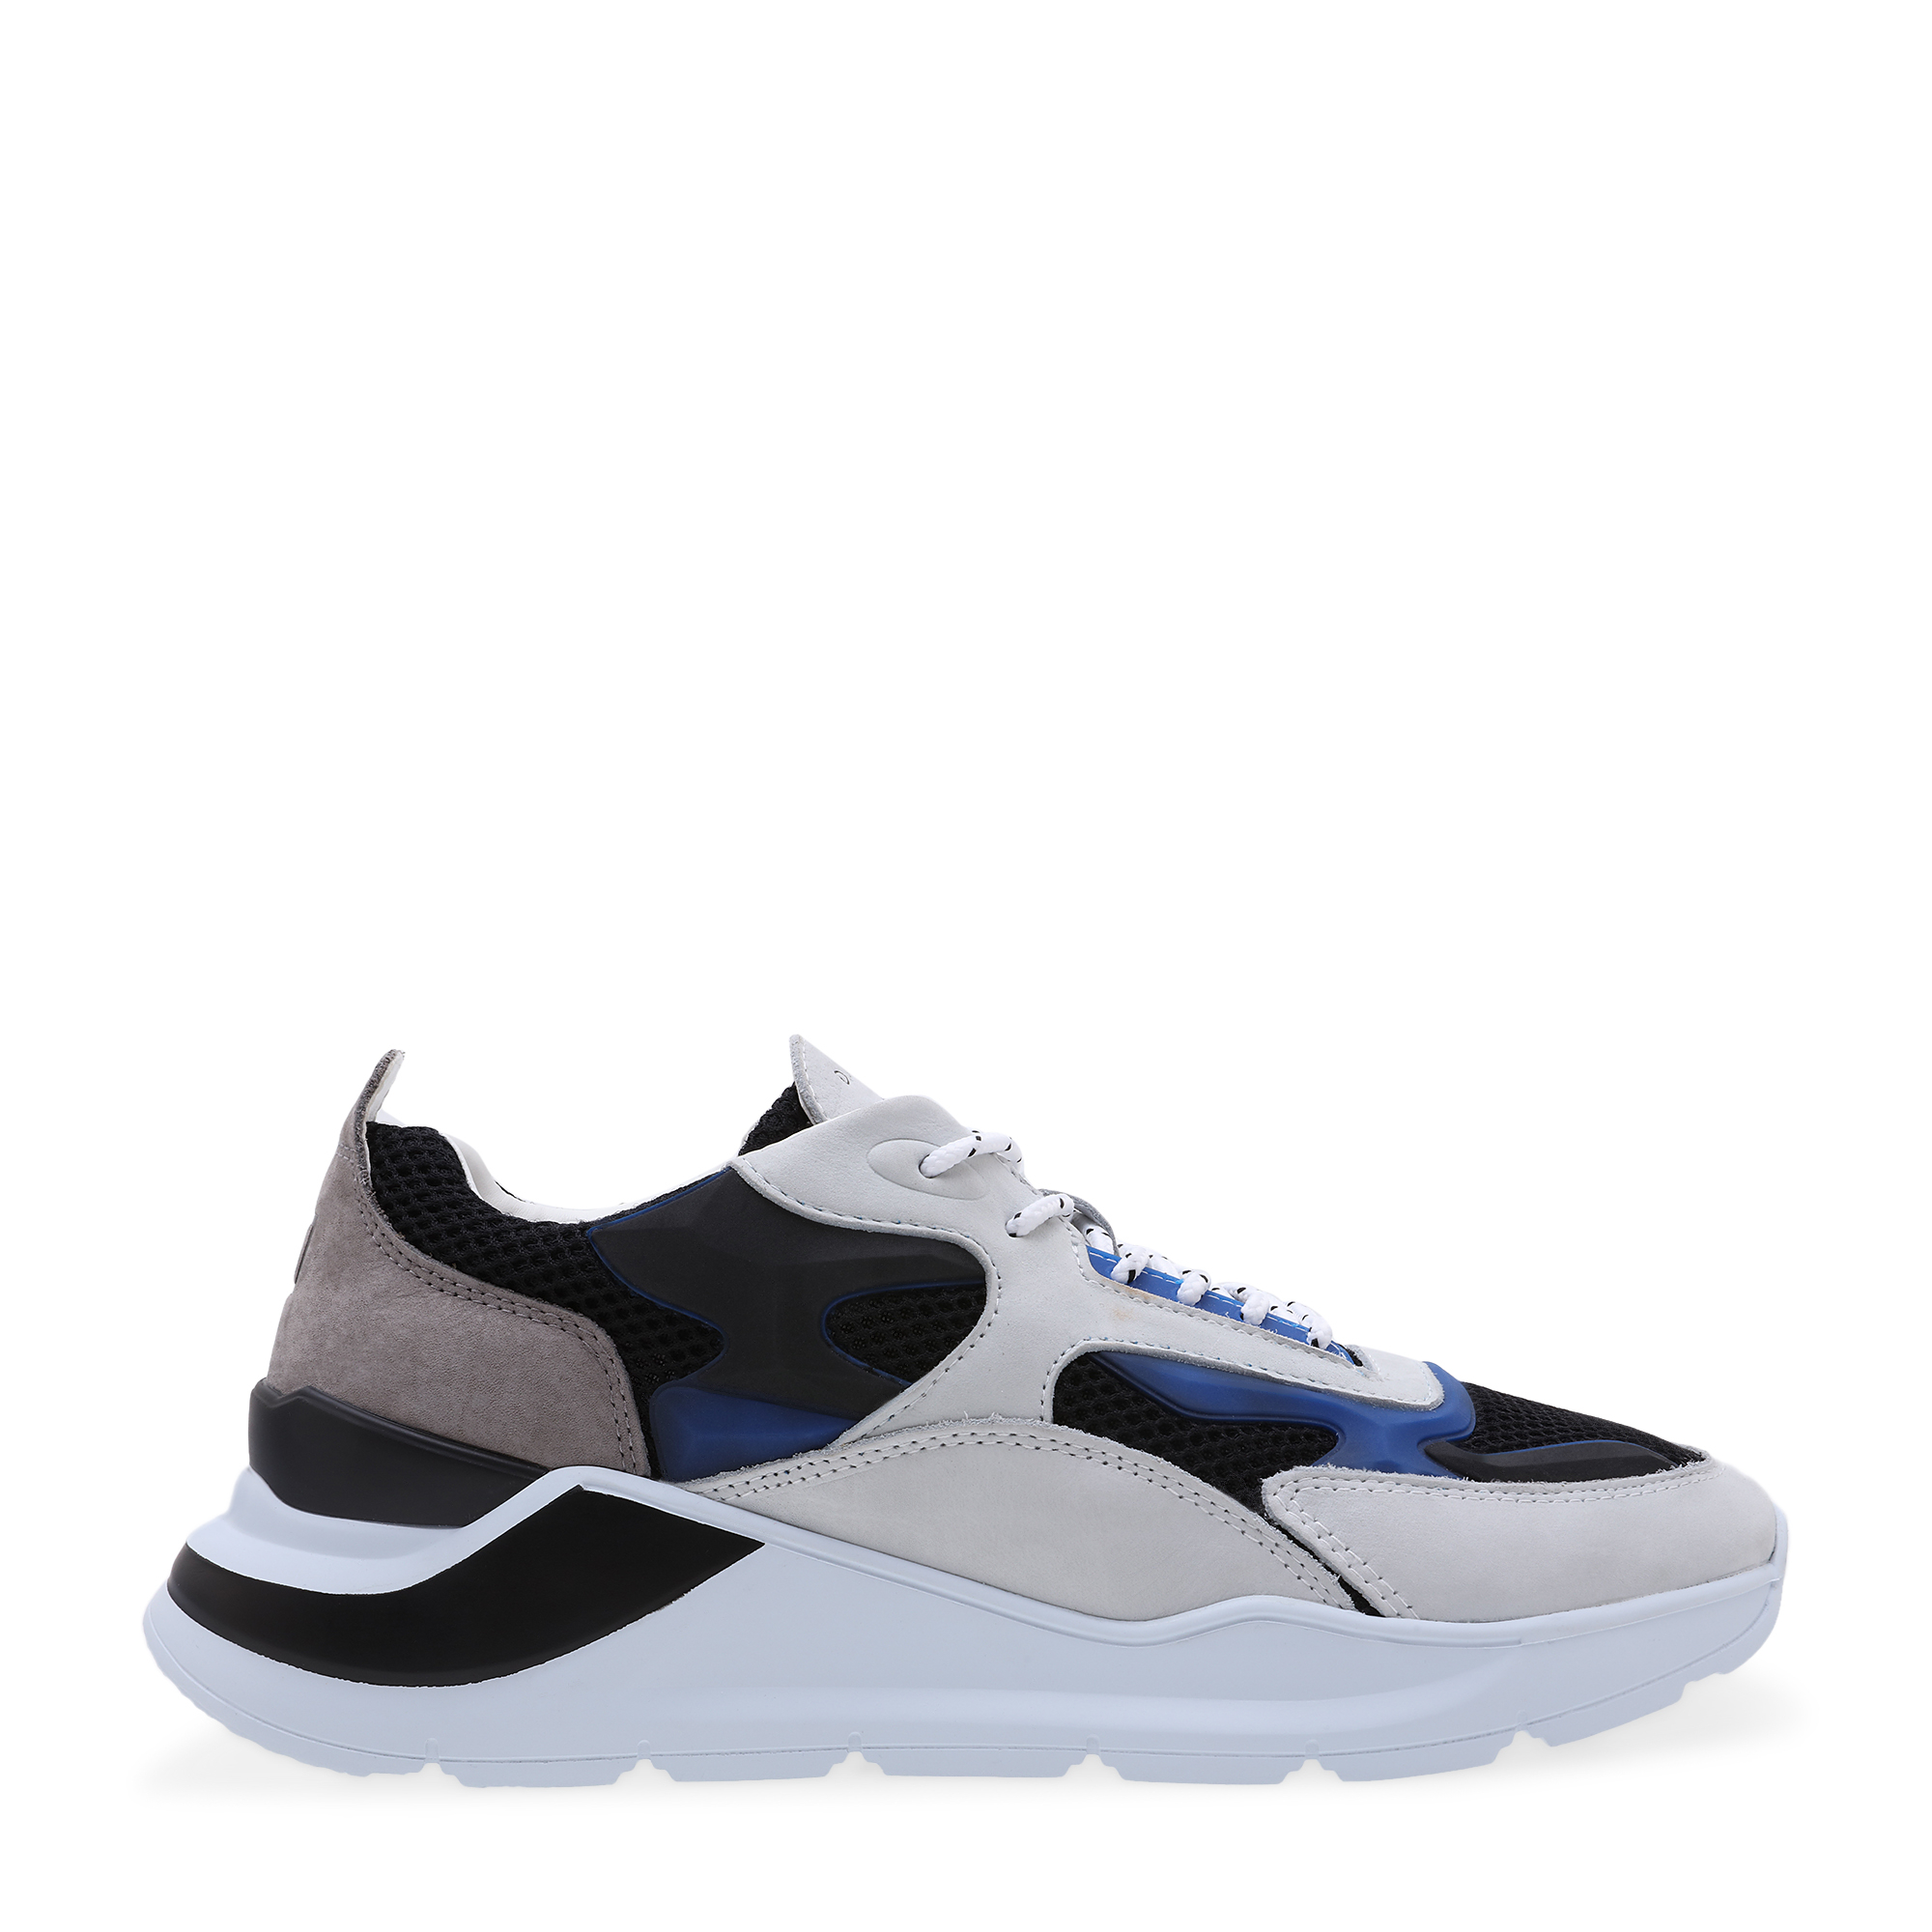 Fuga Injection sneakers